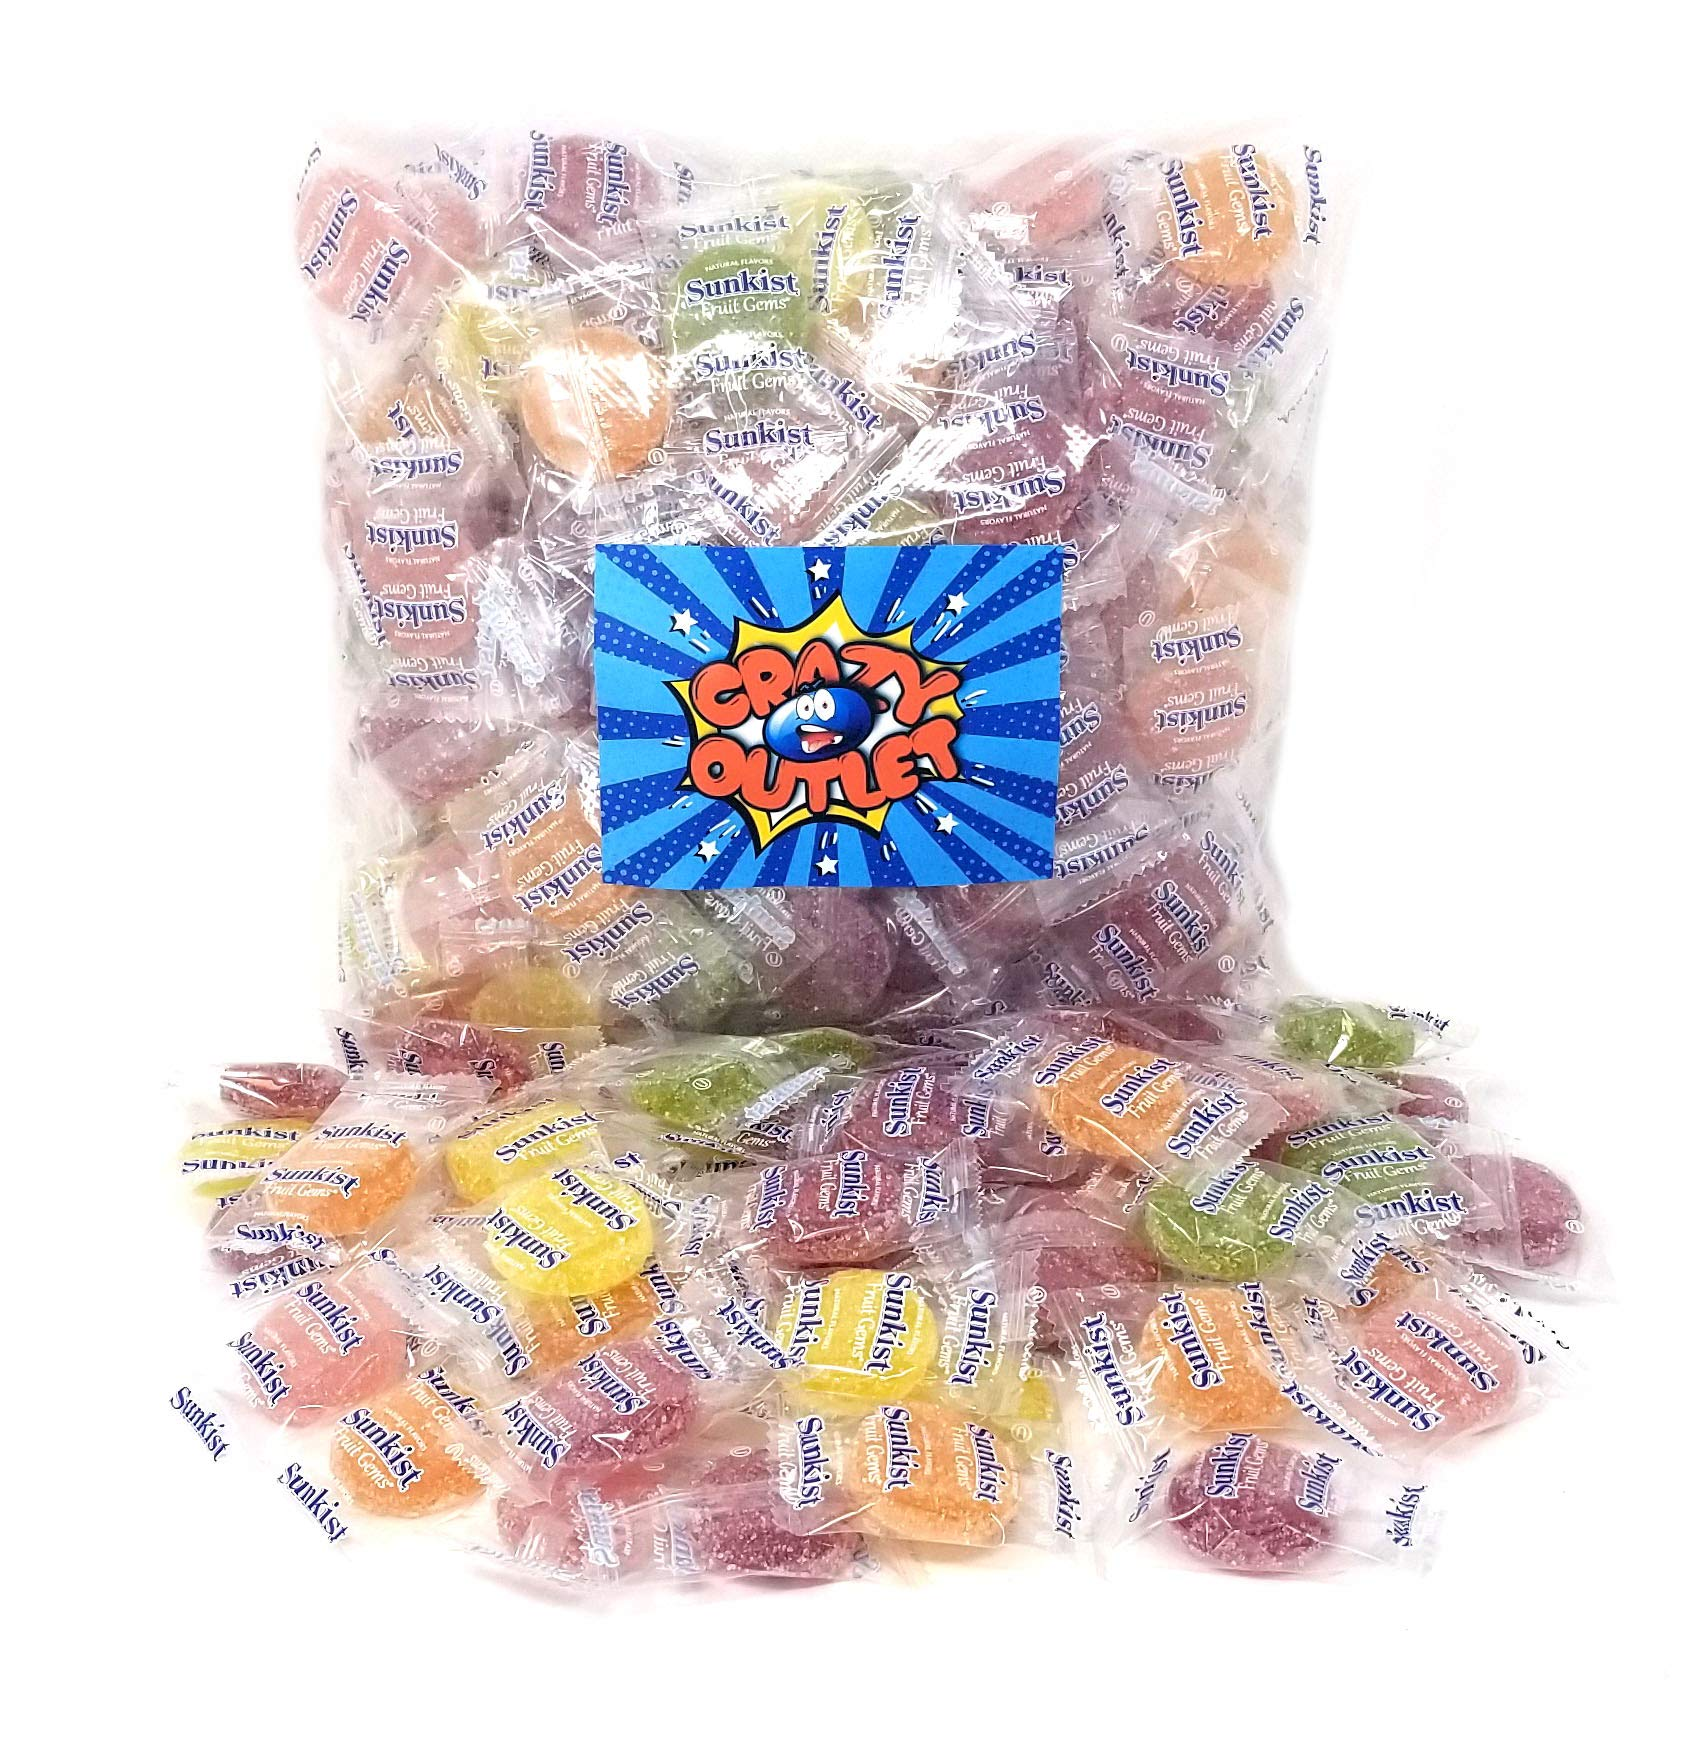 CrazyOutlet Pack - Sunkist Fruit Gems Candy, Kosher, All Natural Flavors, Individually Wrapped, 2 lbs